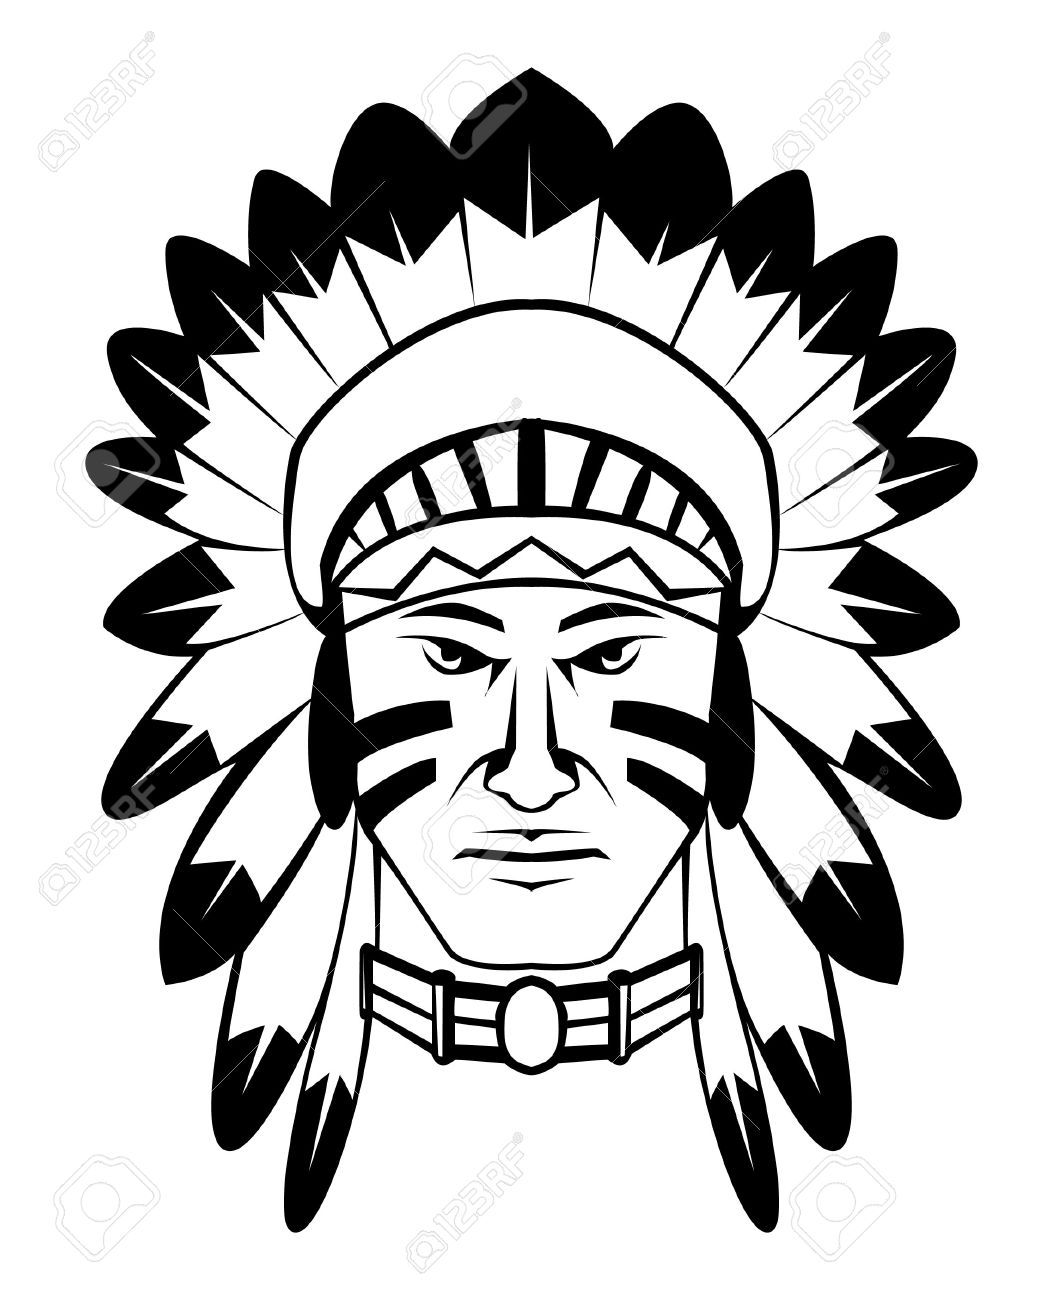 Indian Head Clipart | Free download best Indian Head Clipart